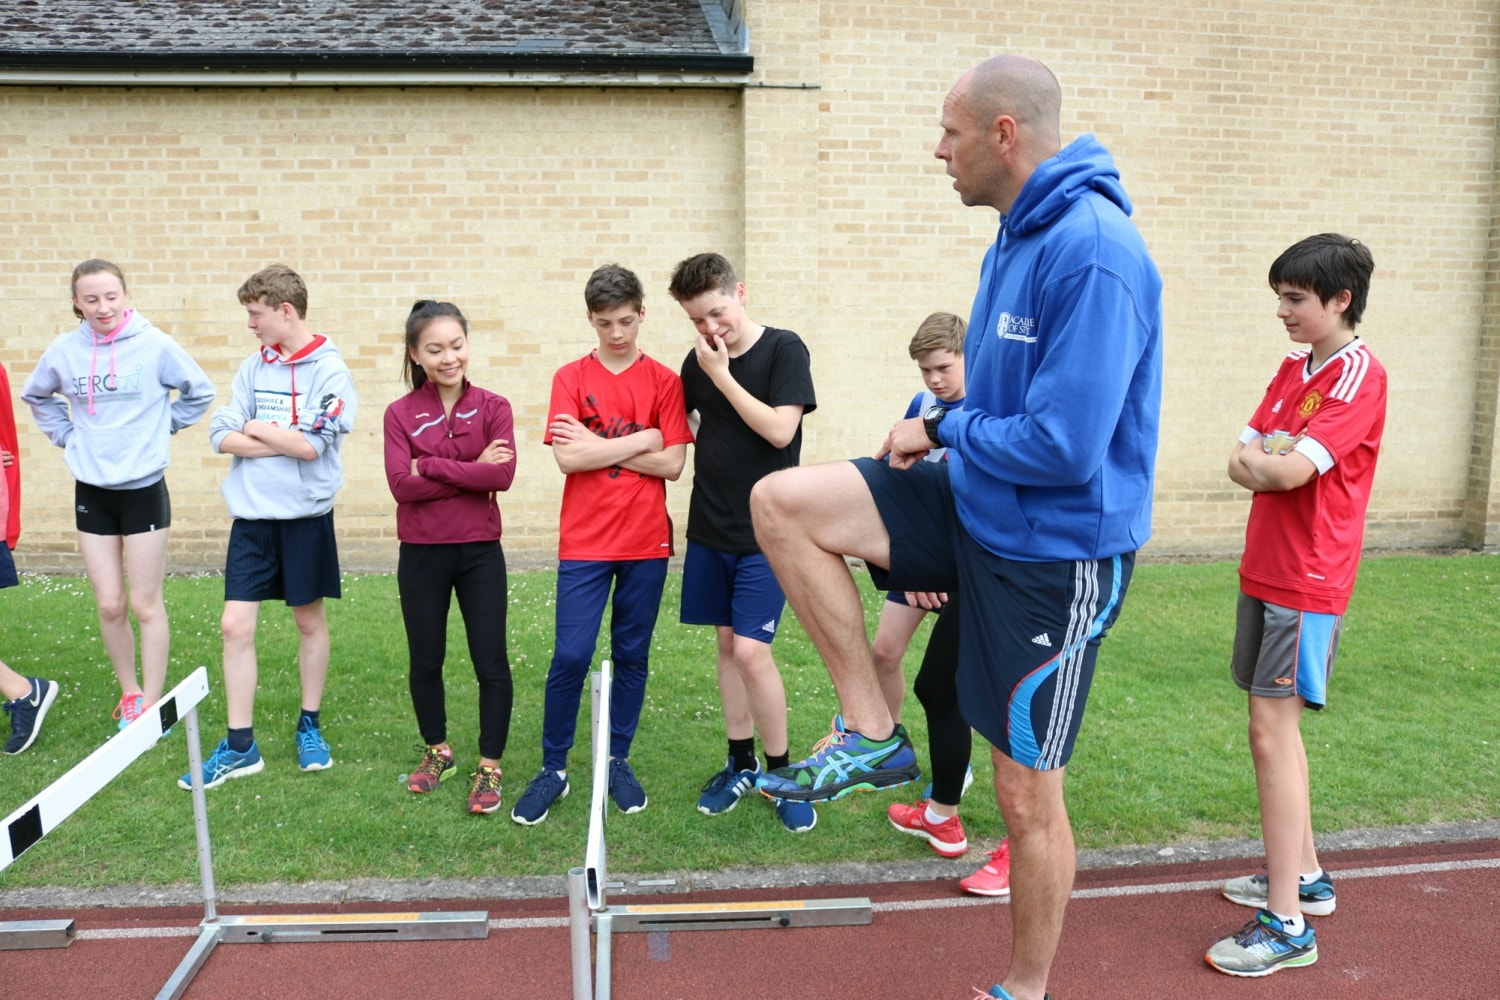 Dean Macey coaching on Academies of Sport